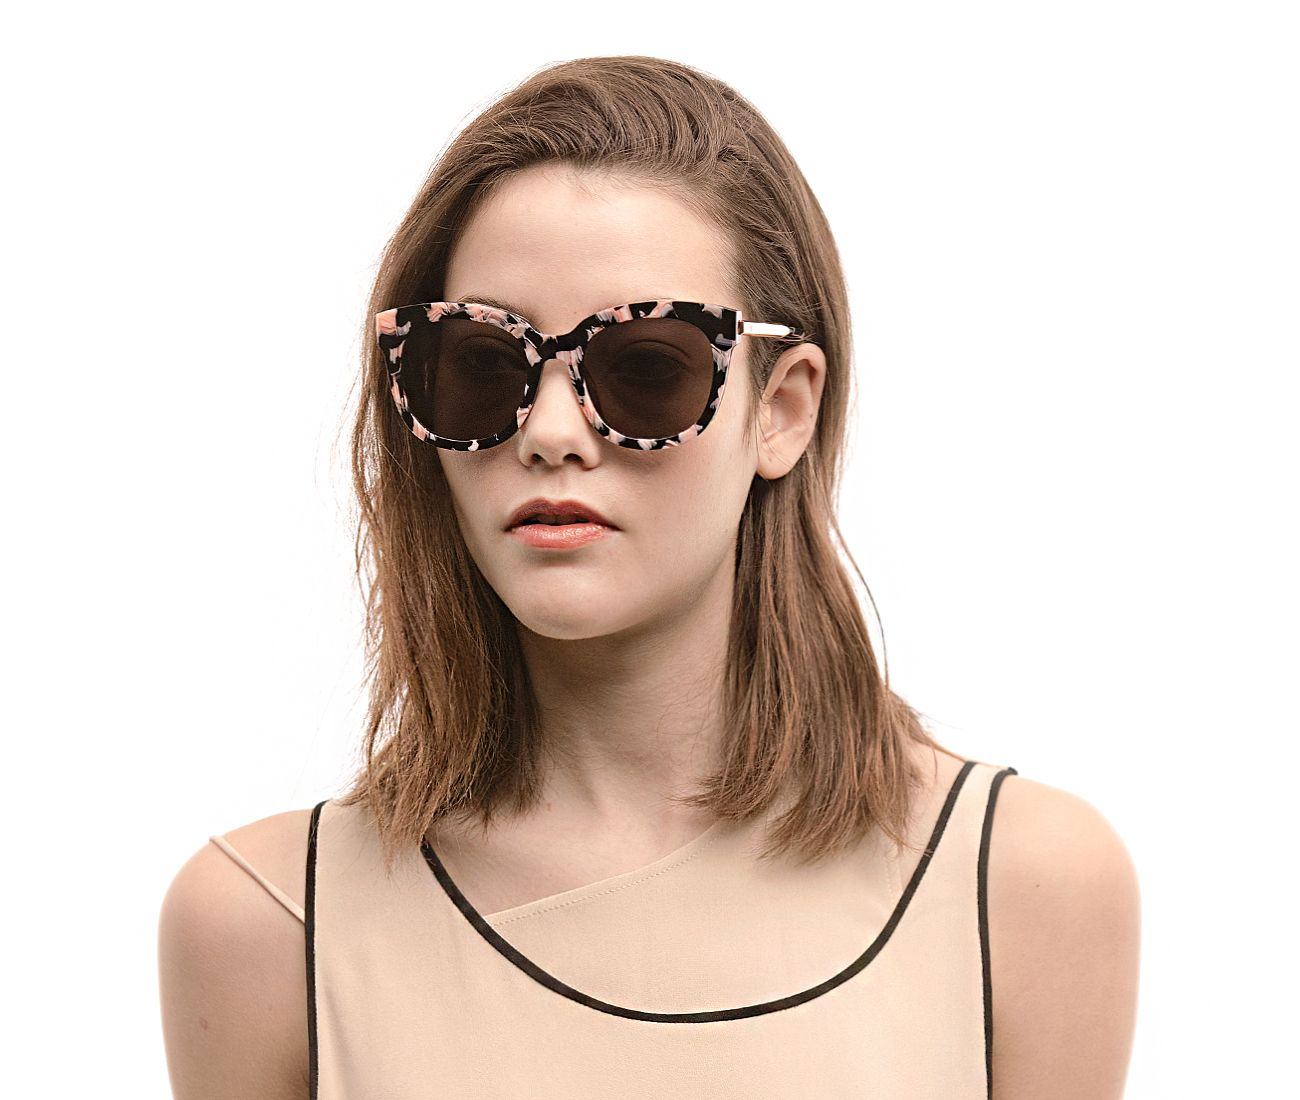 4a9a2a9c825be GENTLE MONSTER - CUBA 502 PBD1 Sunglasses Women